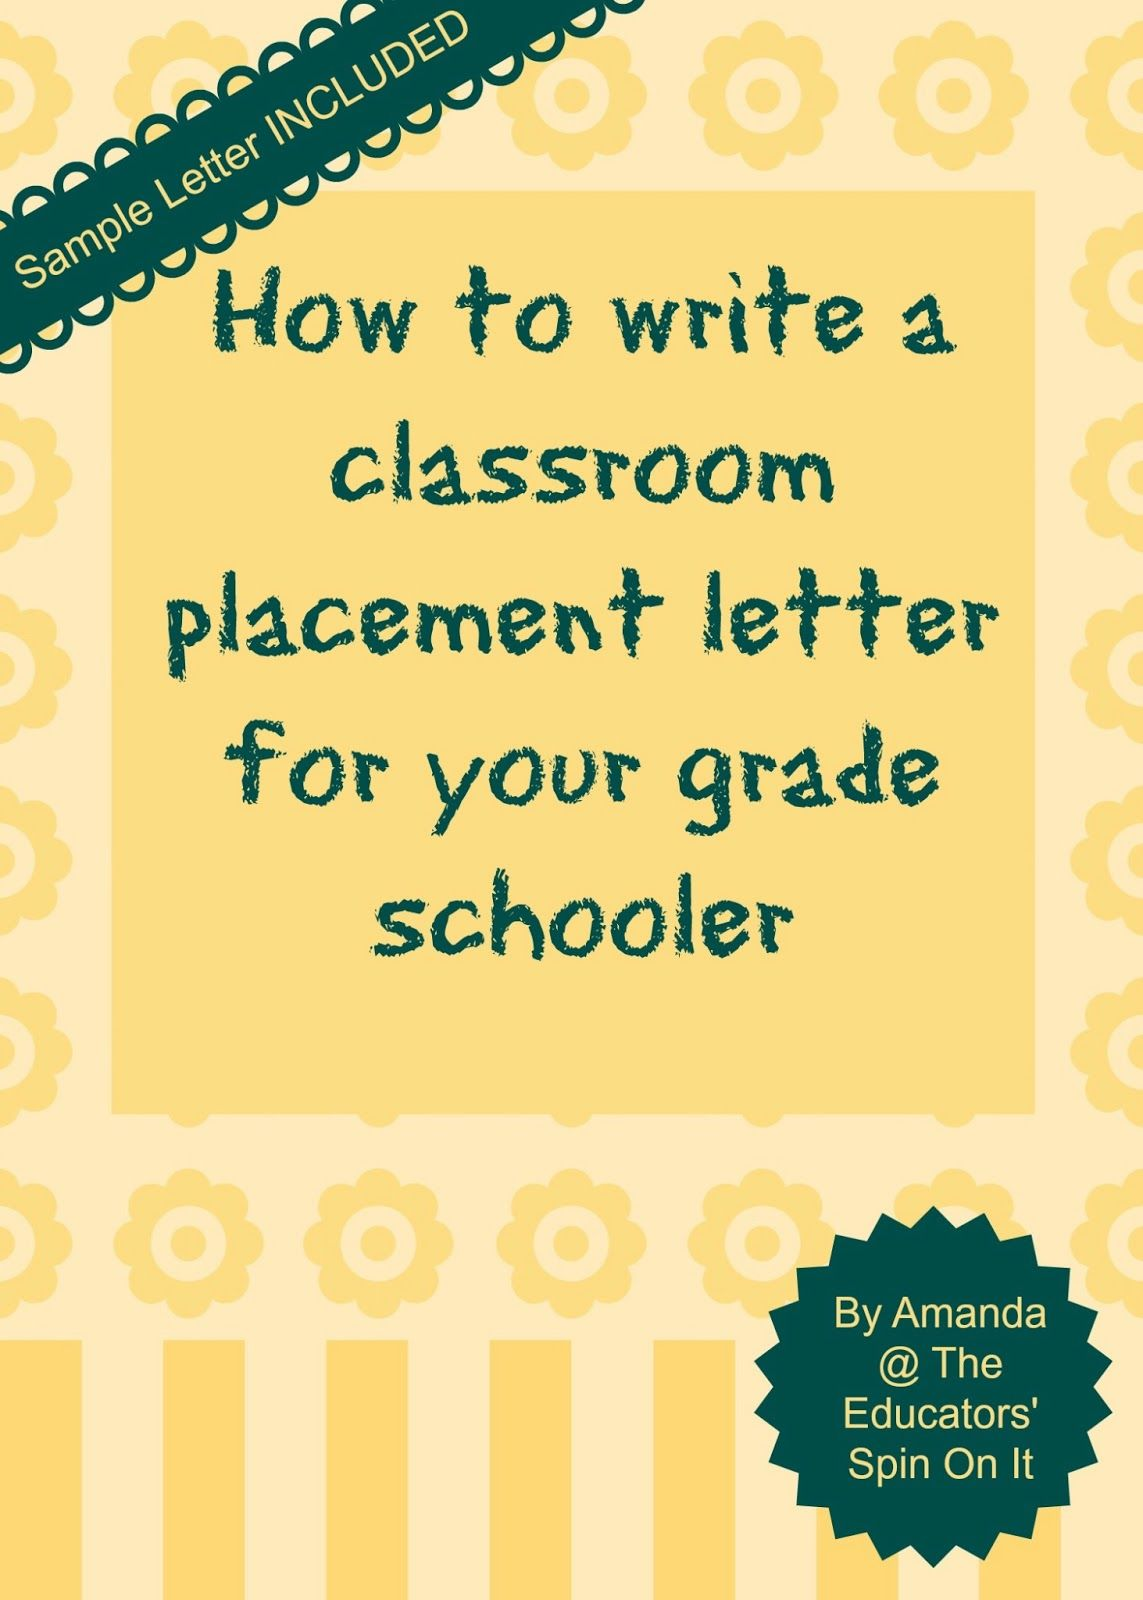 Writing a Classroom Placement Letter or Teacher Request